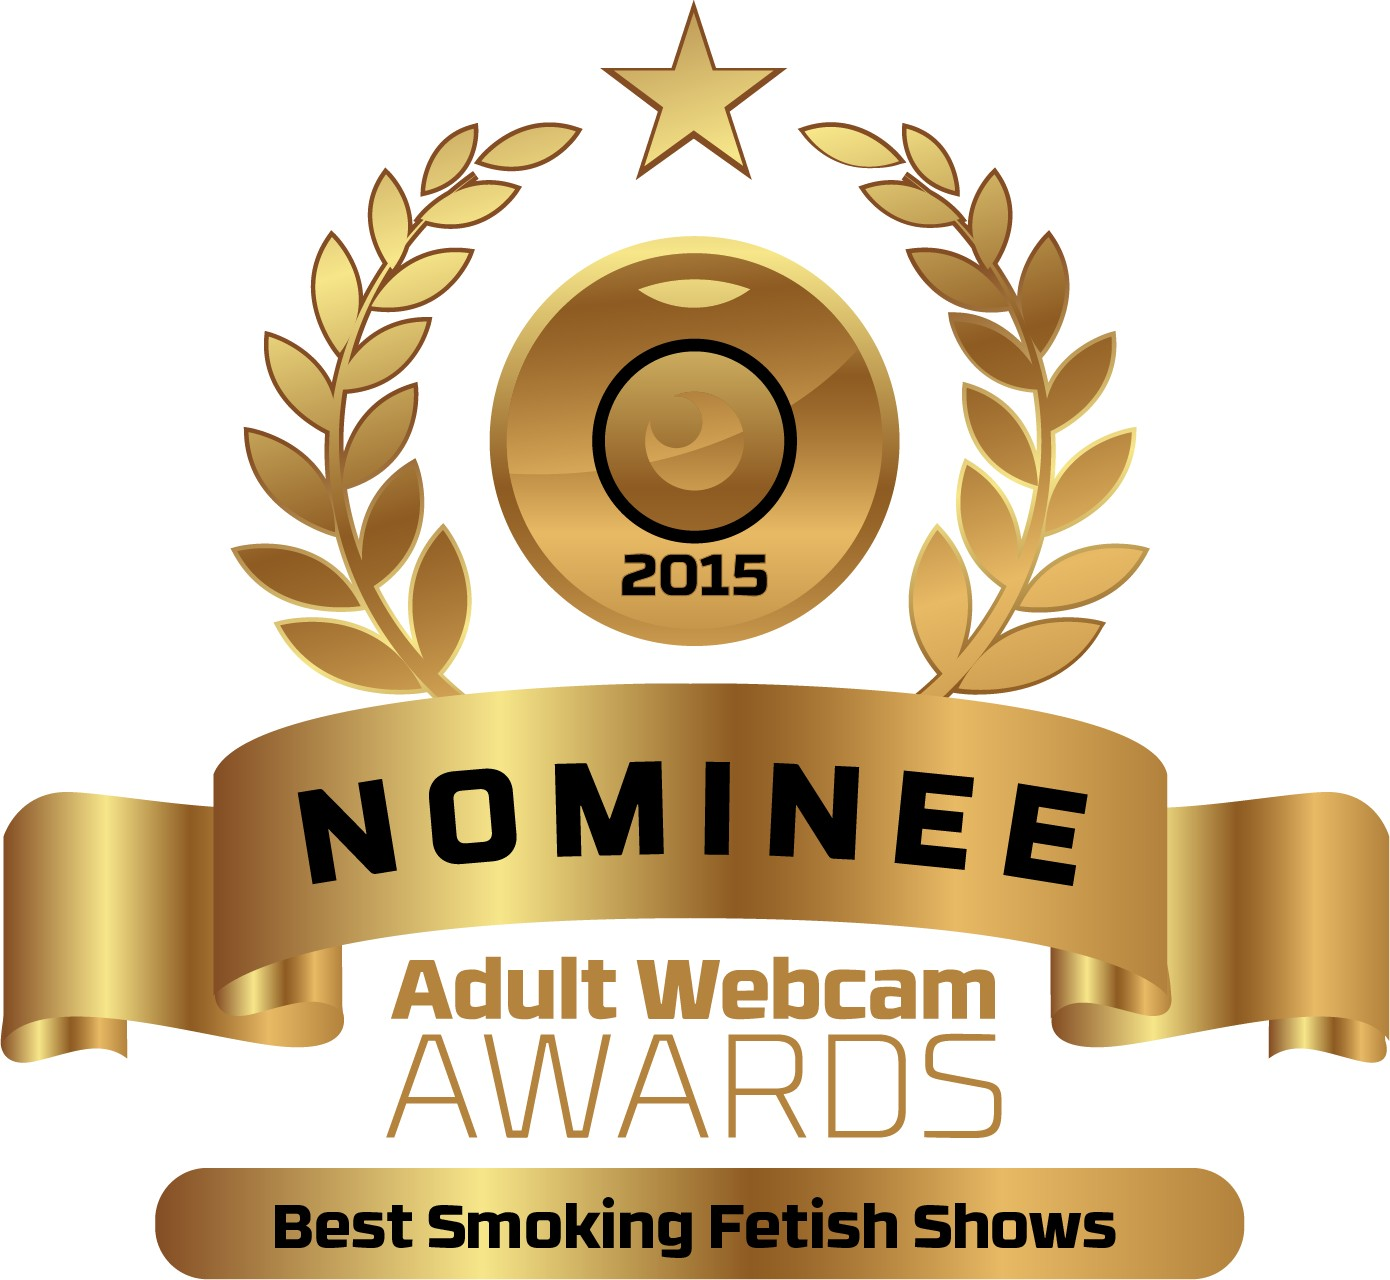 Best smoking fetish show nominee